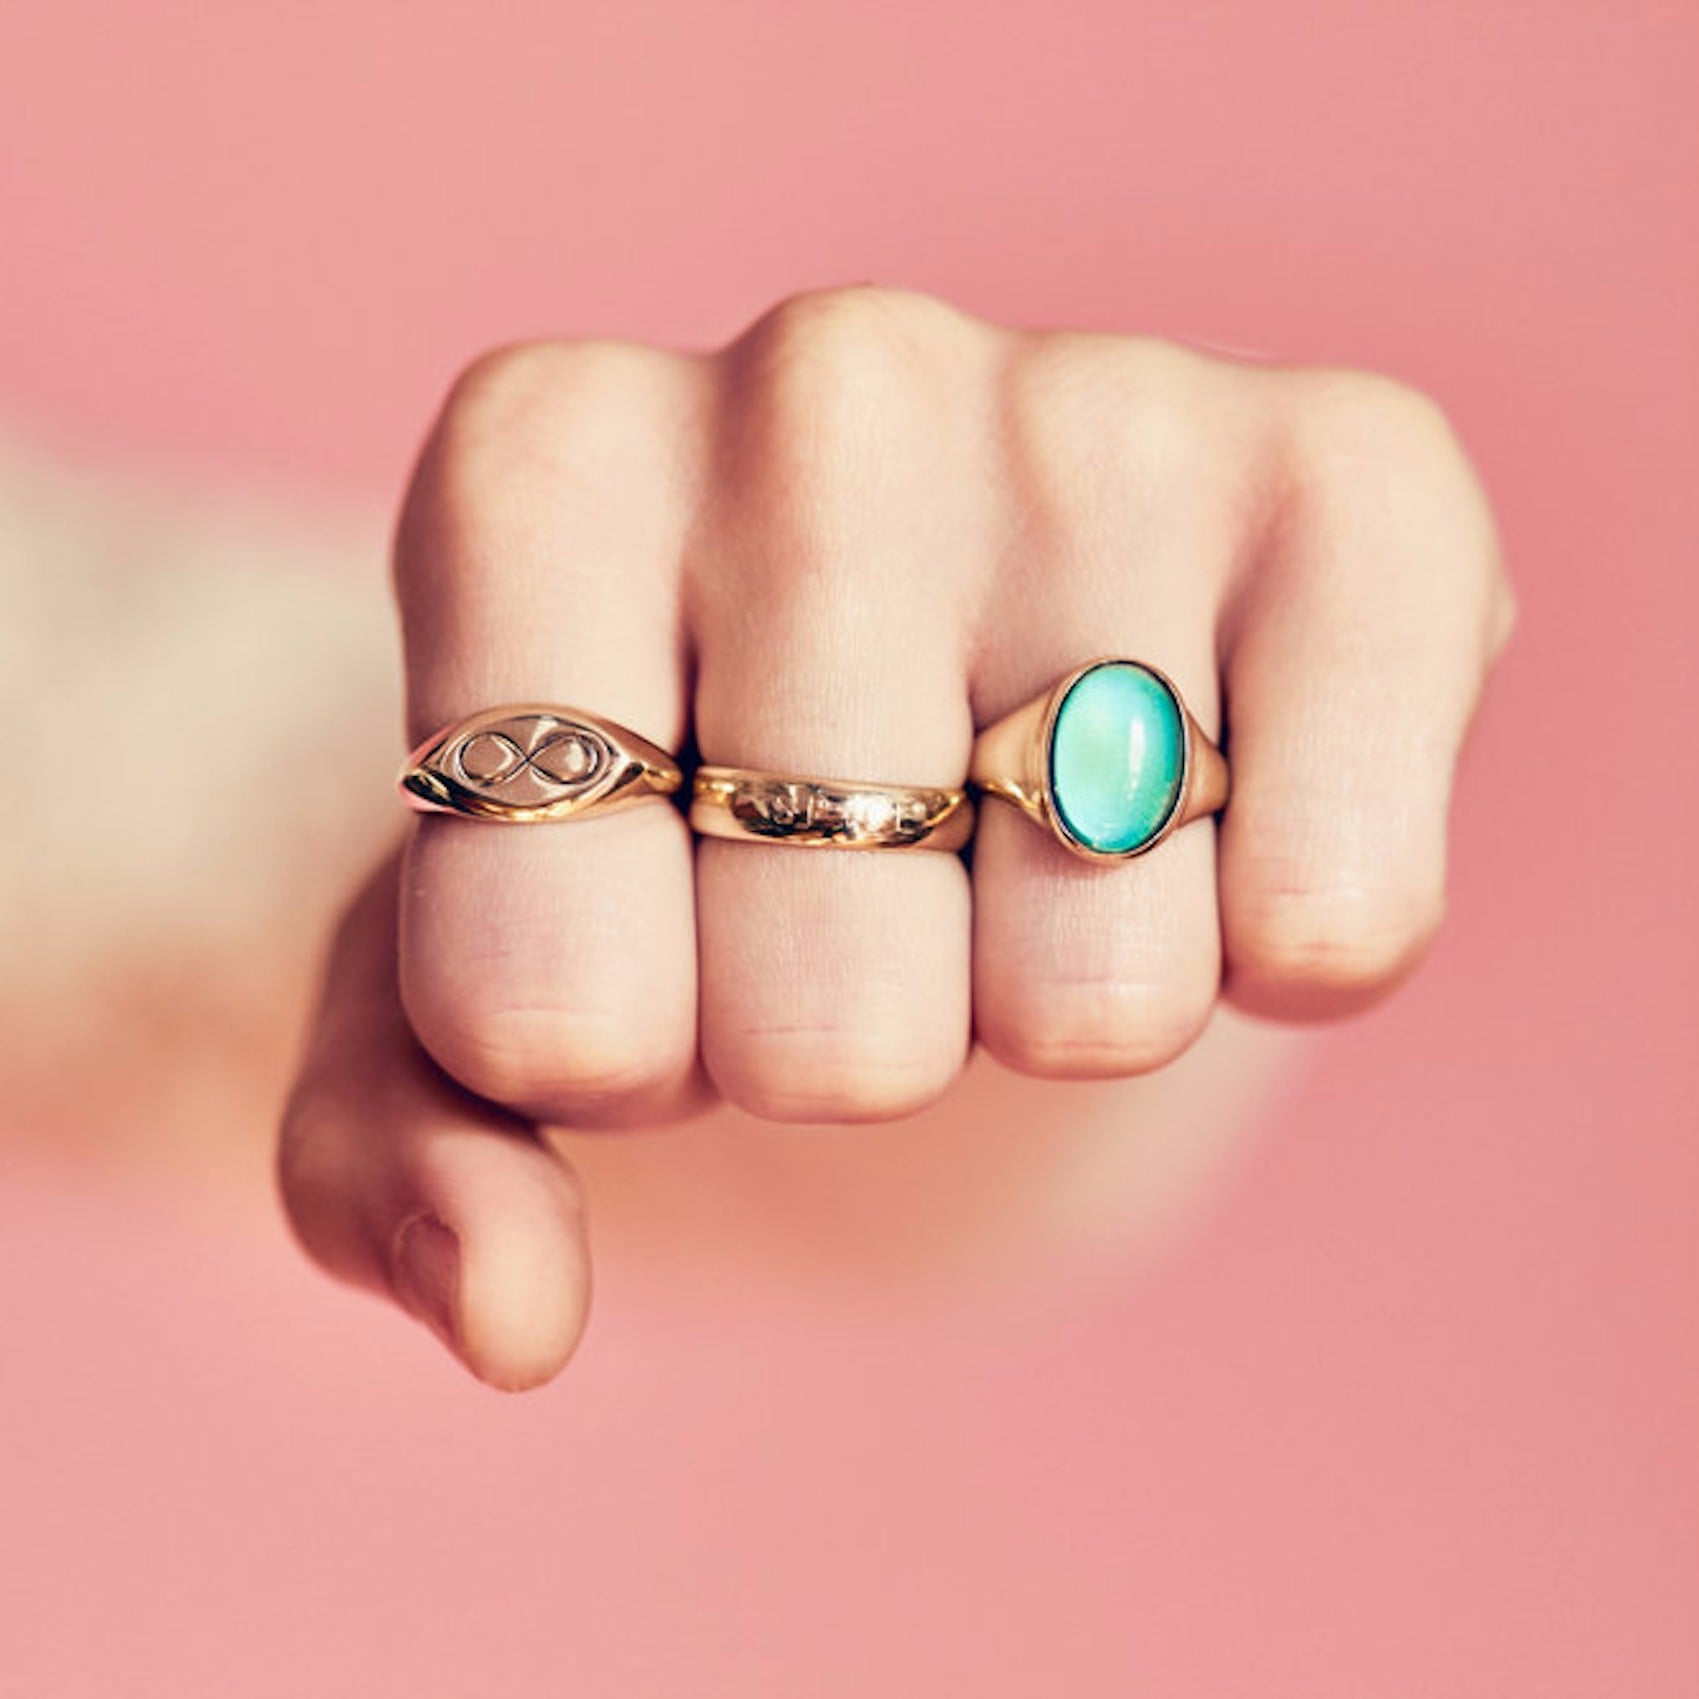 Mood Ring Trend | POPSUGAR Fashion